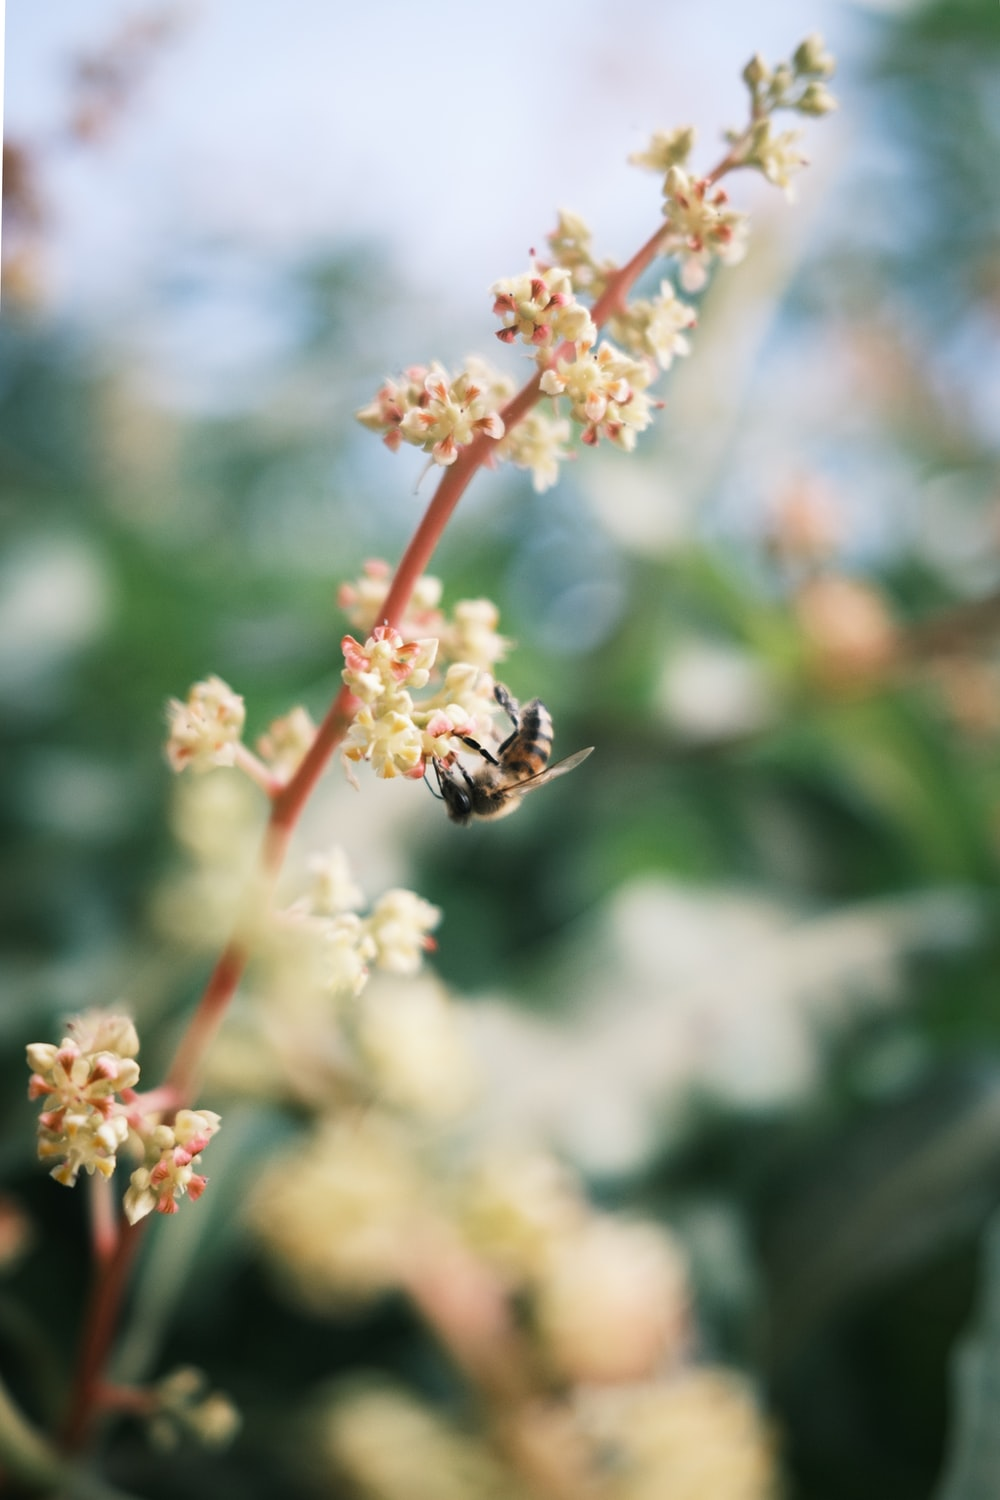 honeybee perched on white and red flower in close up photography during daytime